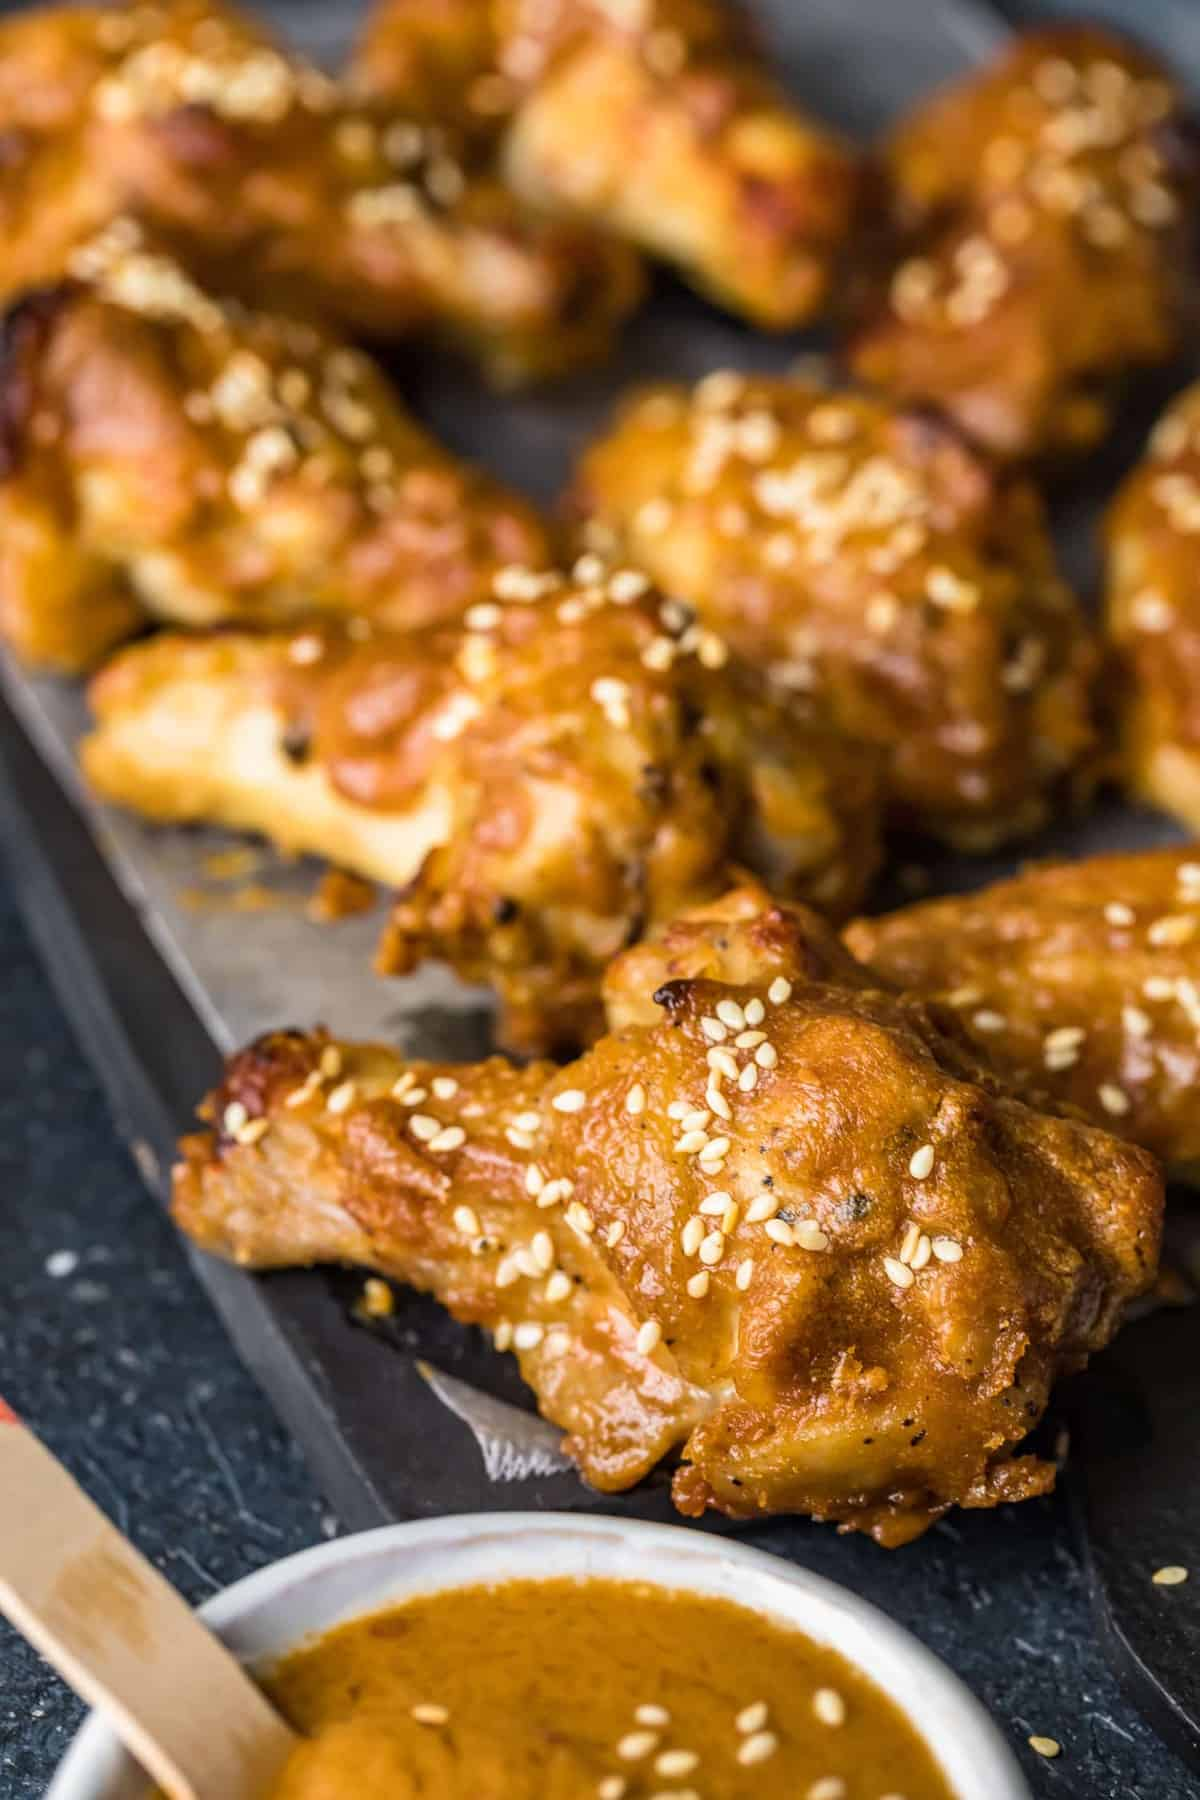 Sesame seeds sprinkled on the baked wings